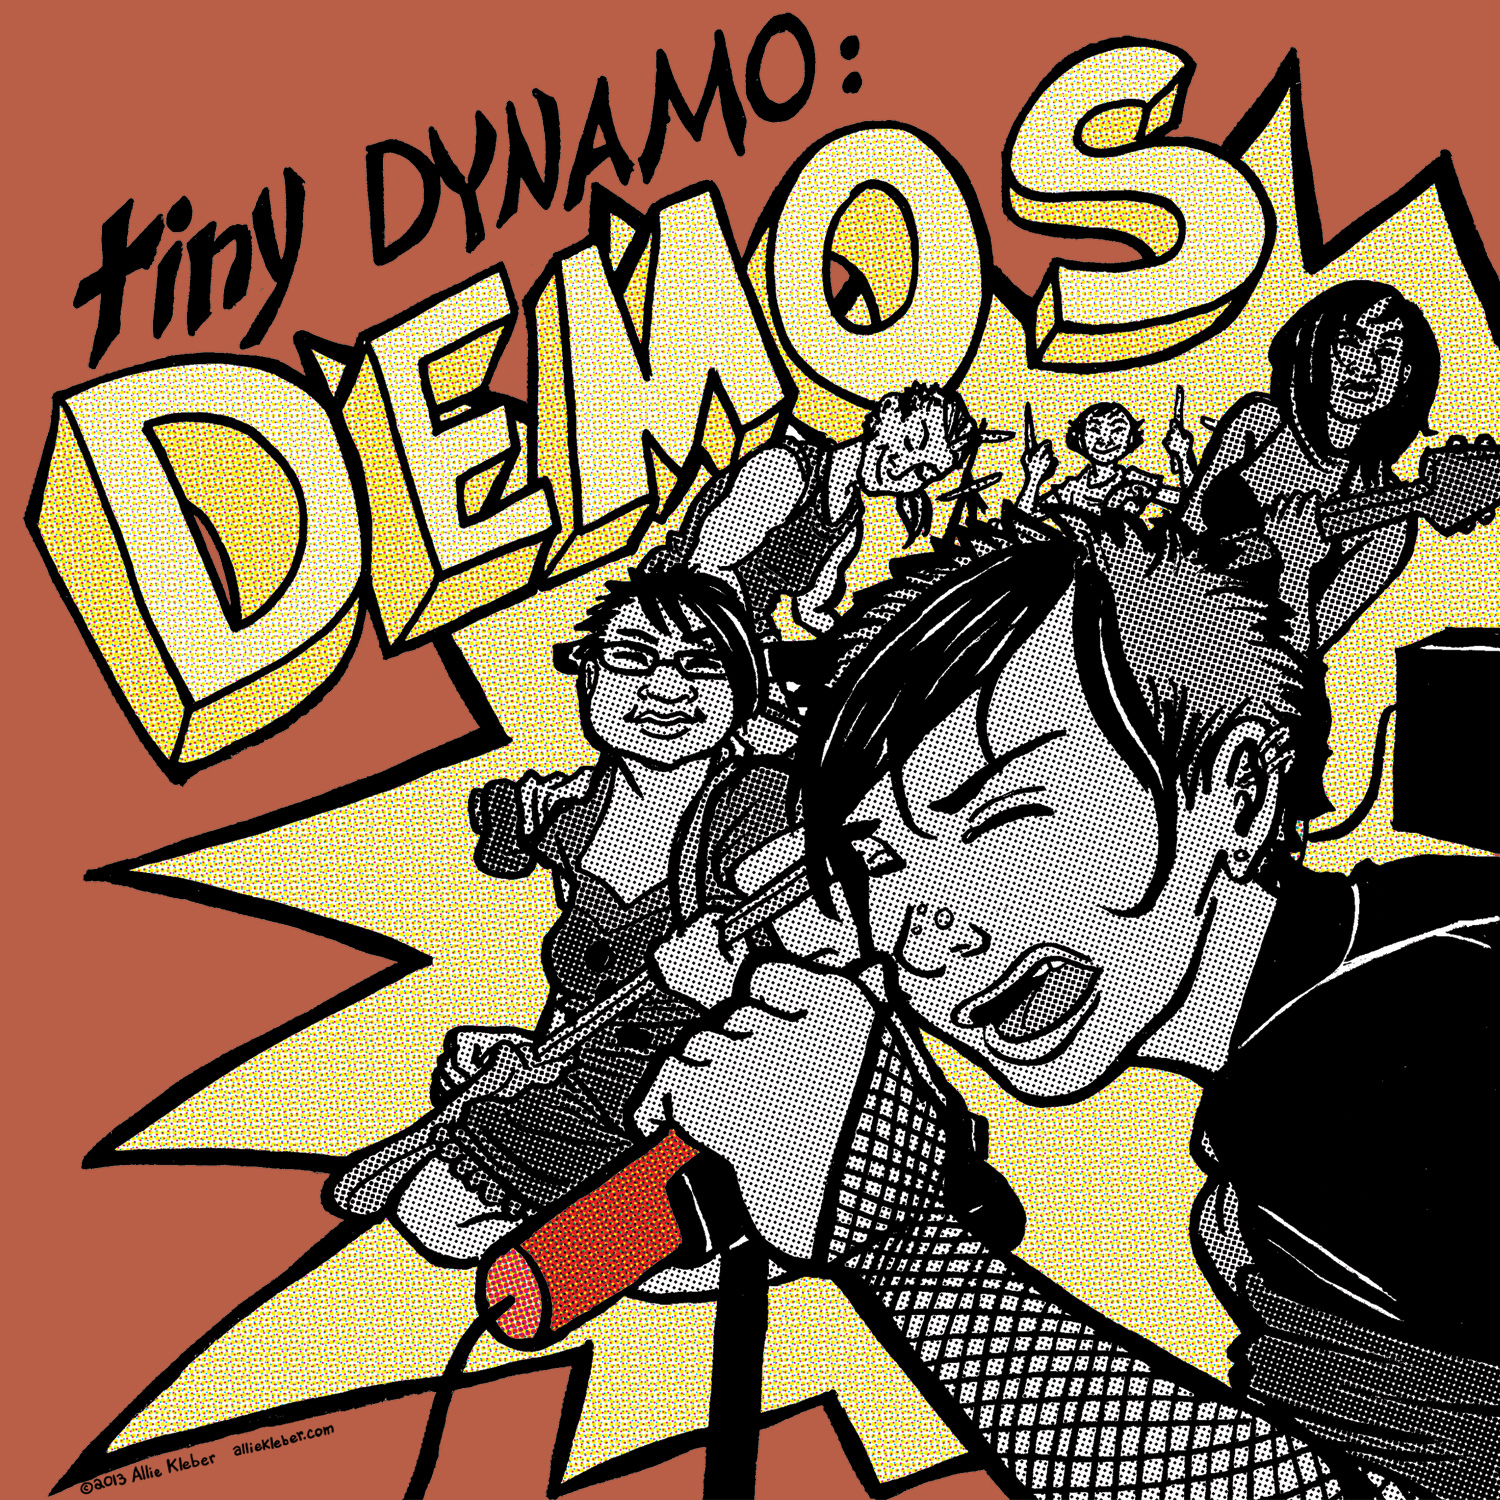 Tiny Dynamo: The Fuse is the story of a college band's first gig, done as a fun exercise: practicing telling a simple(!) narrative, and a lot of focus on technical nuts & bolts. Rockstars are so much fun to DRAW; I have thoughts about revisiting these guys someday in a much more expanded fashion.